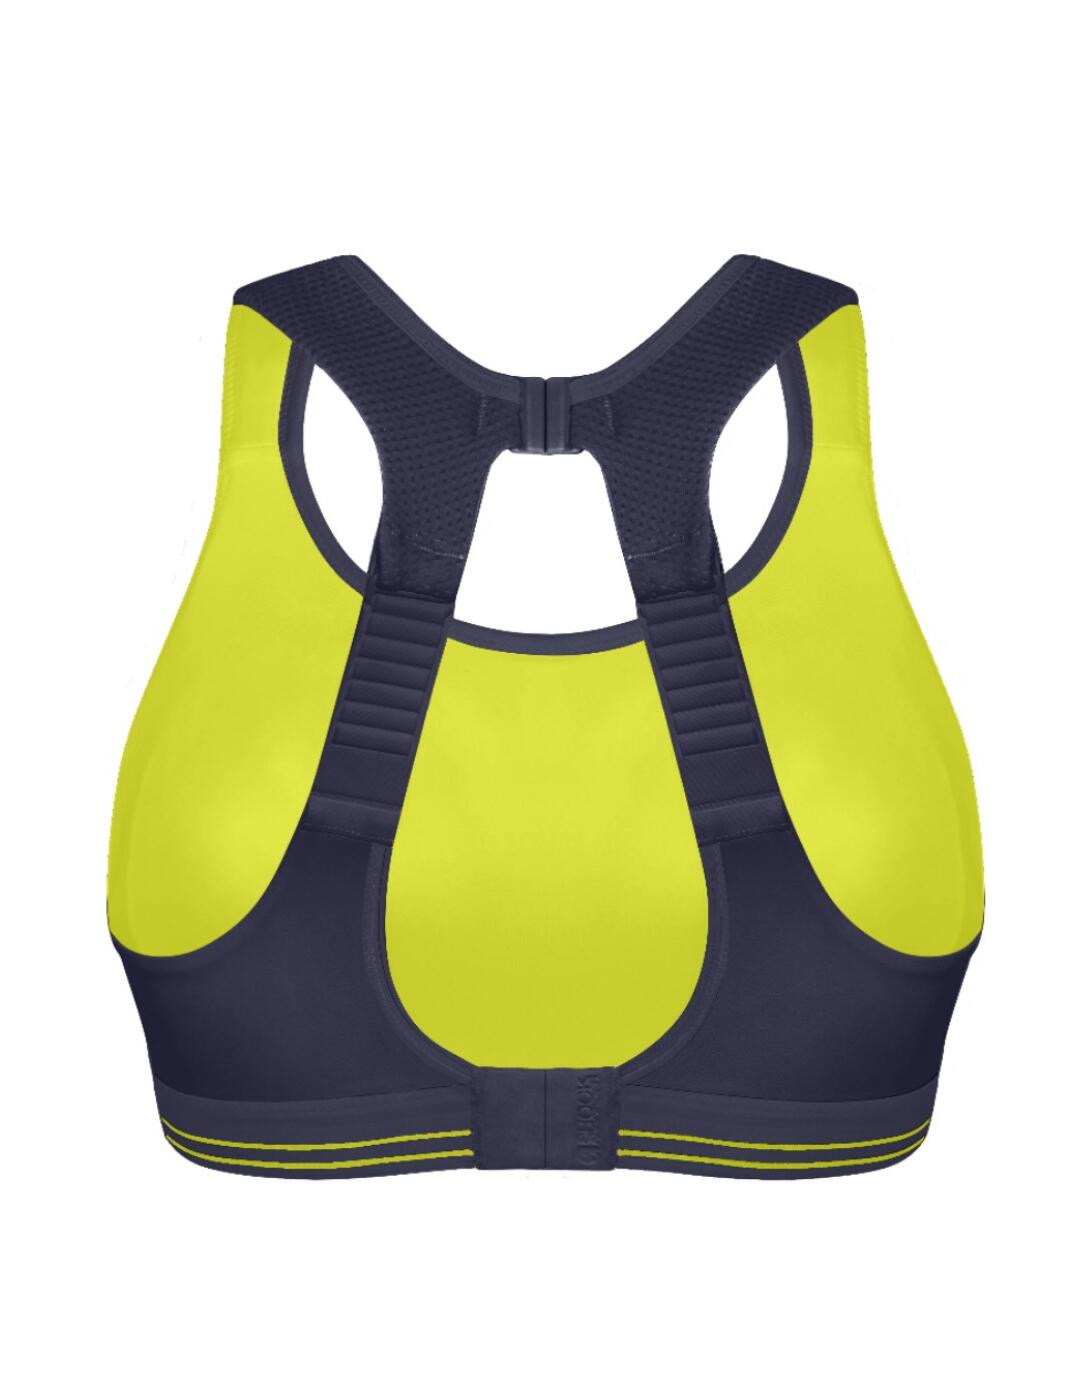 Shock-Absorber-Sports-Bra-S5044-Non-Wired-High-Impact-Run-Sports-Bra thumbnail 33